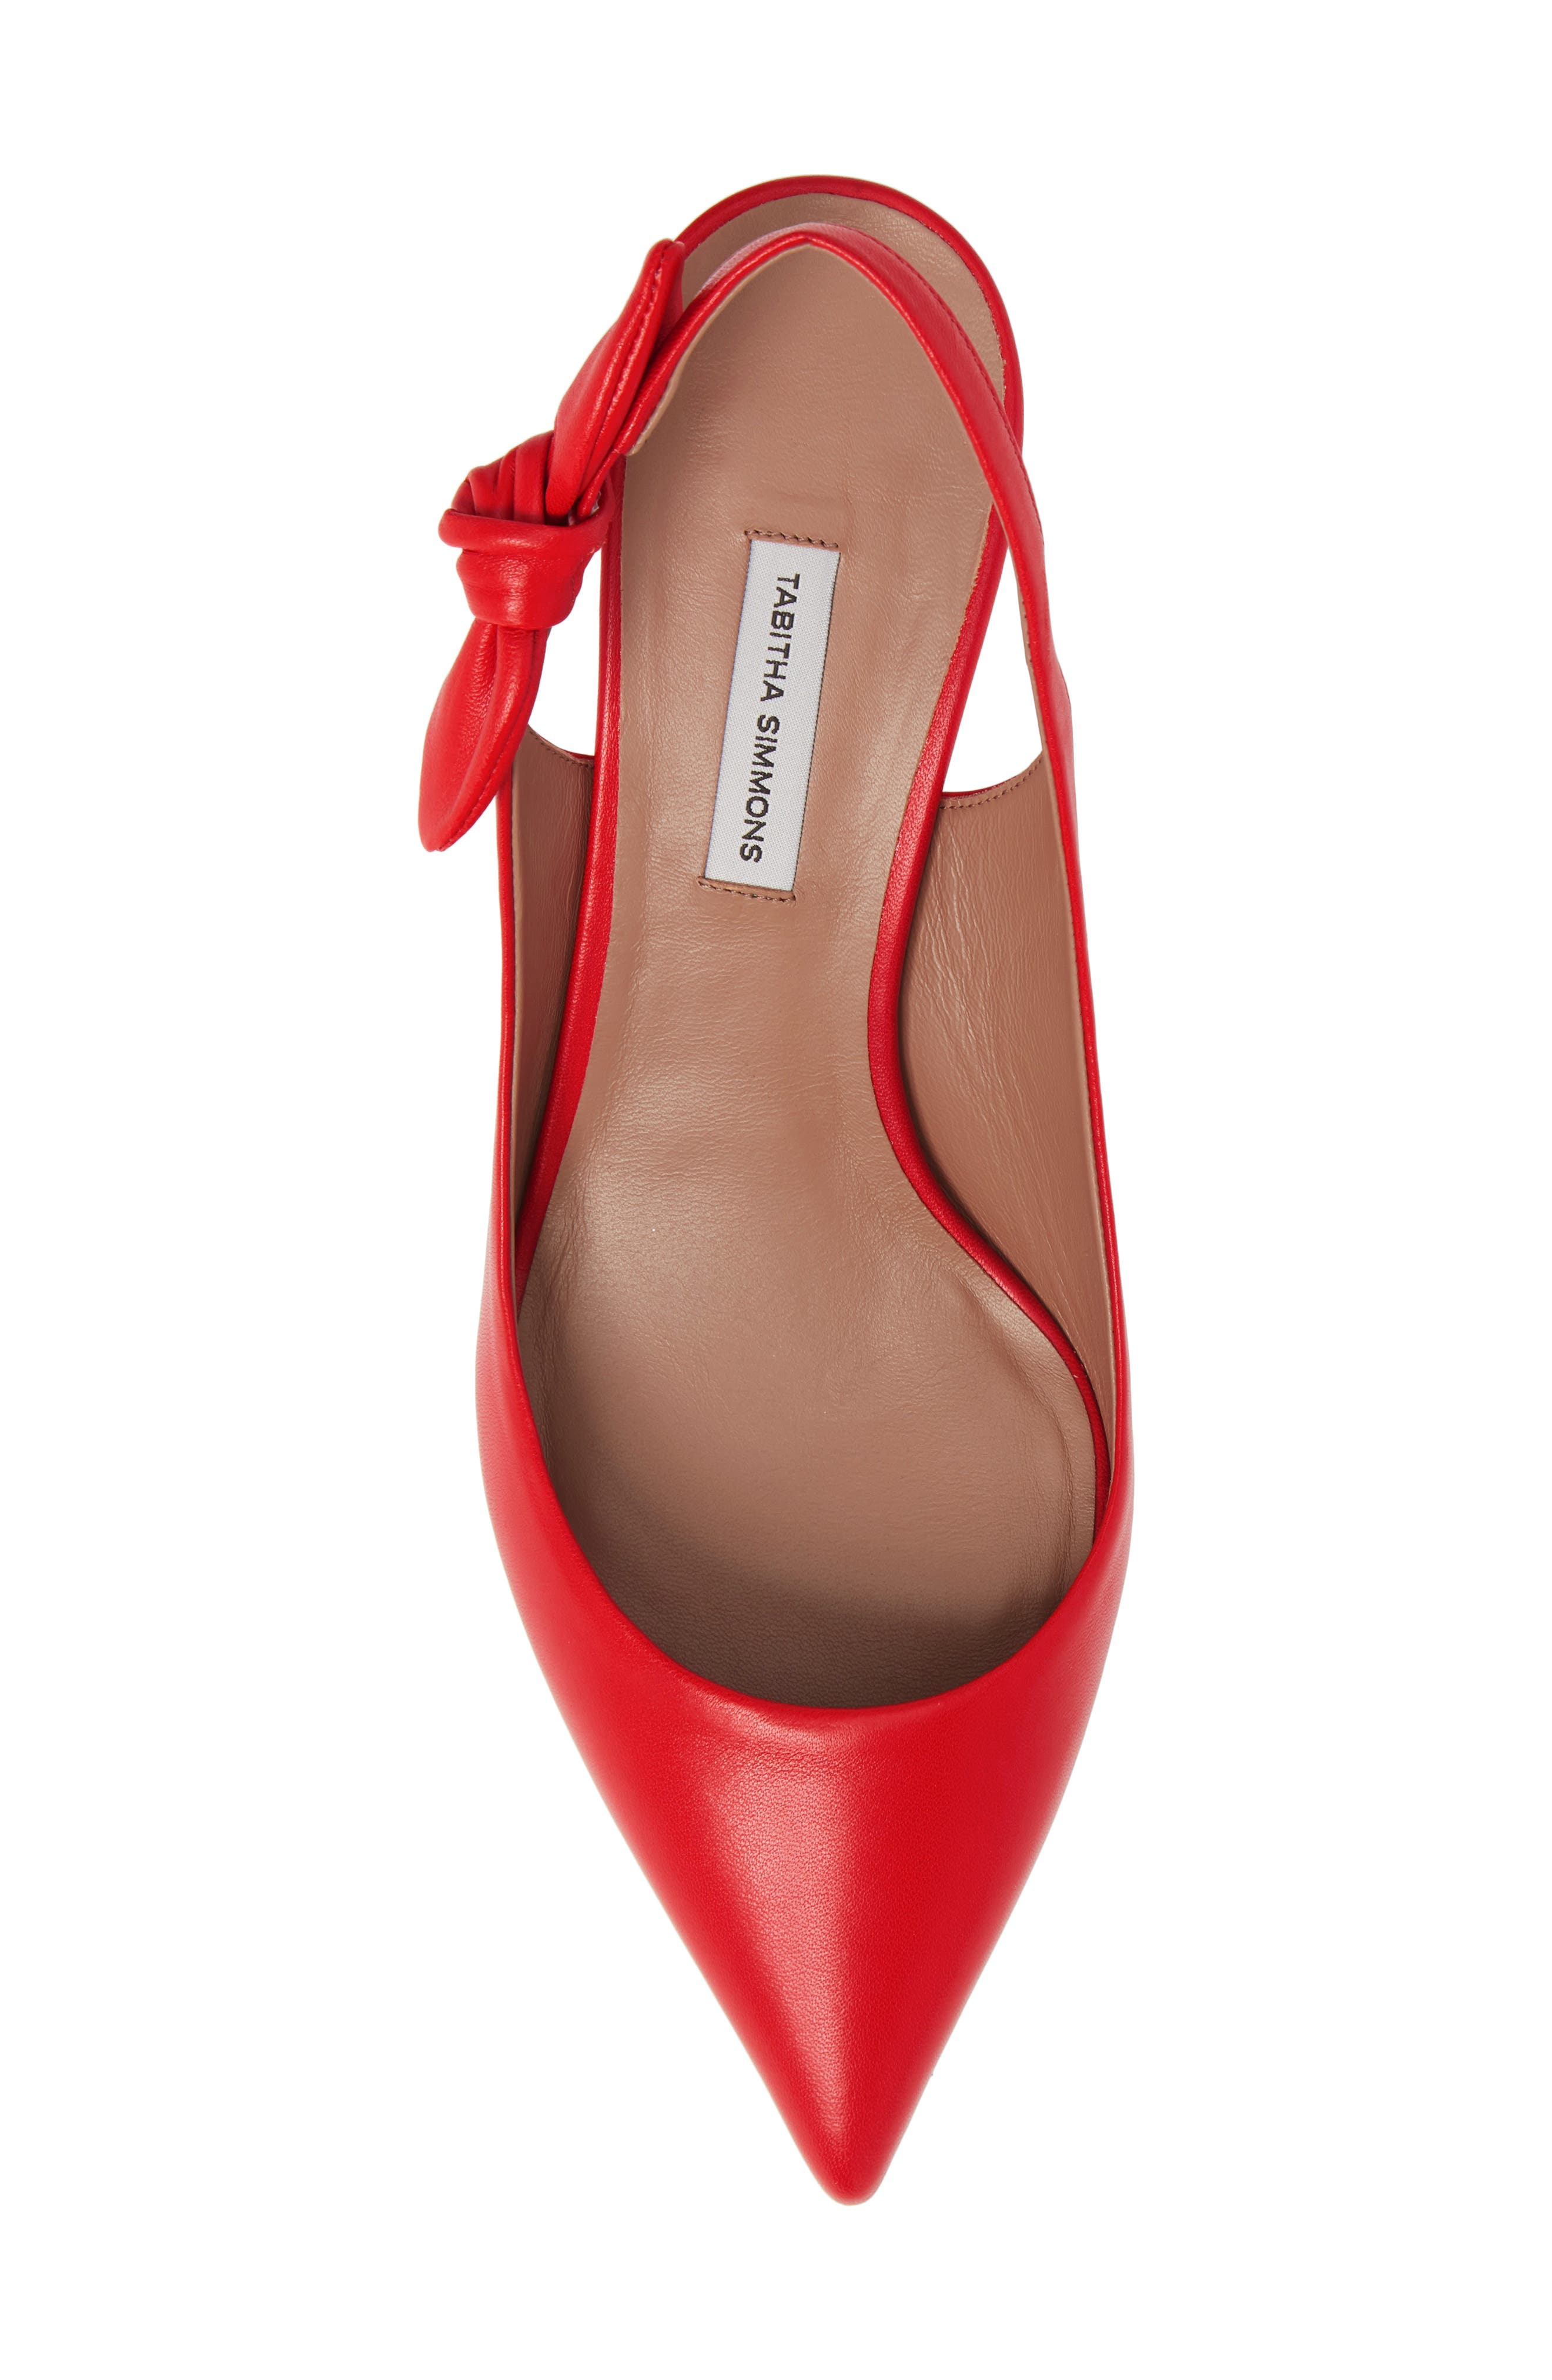 Rise Bow Slingback Pump,                             Alternate thumbnail 5, color,                             Red Leather